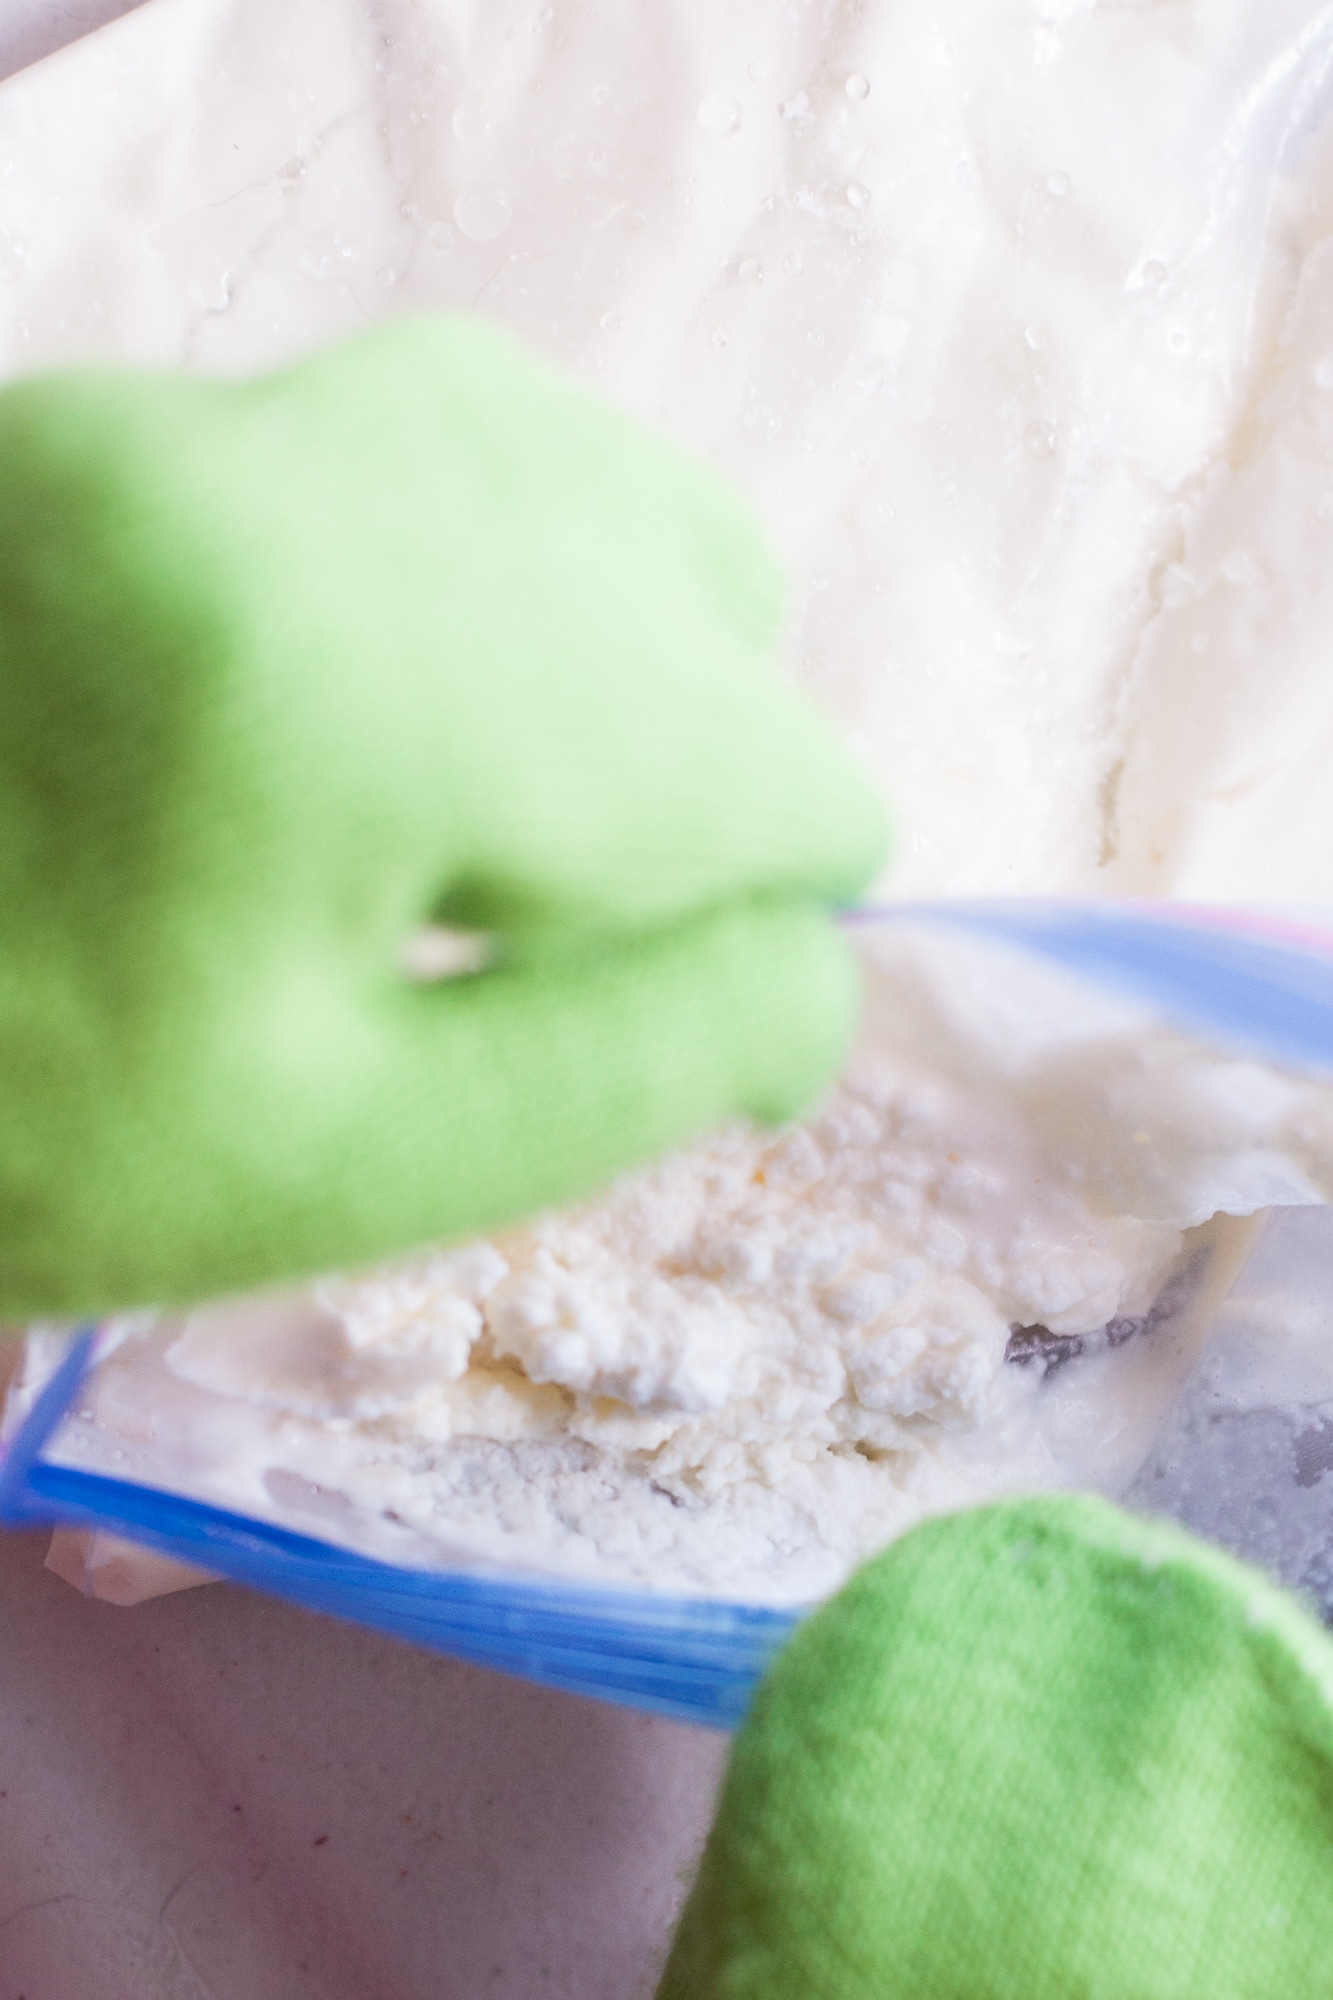 Homemade bag ice cream for kids eating richly ccuart Gallery